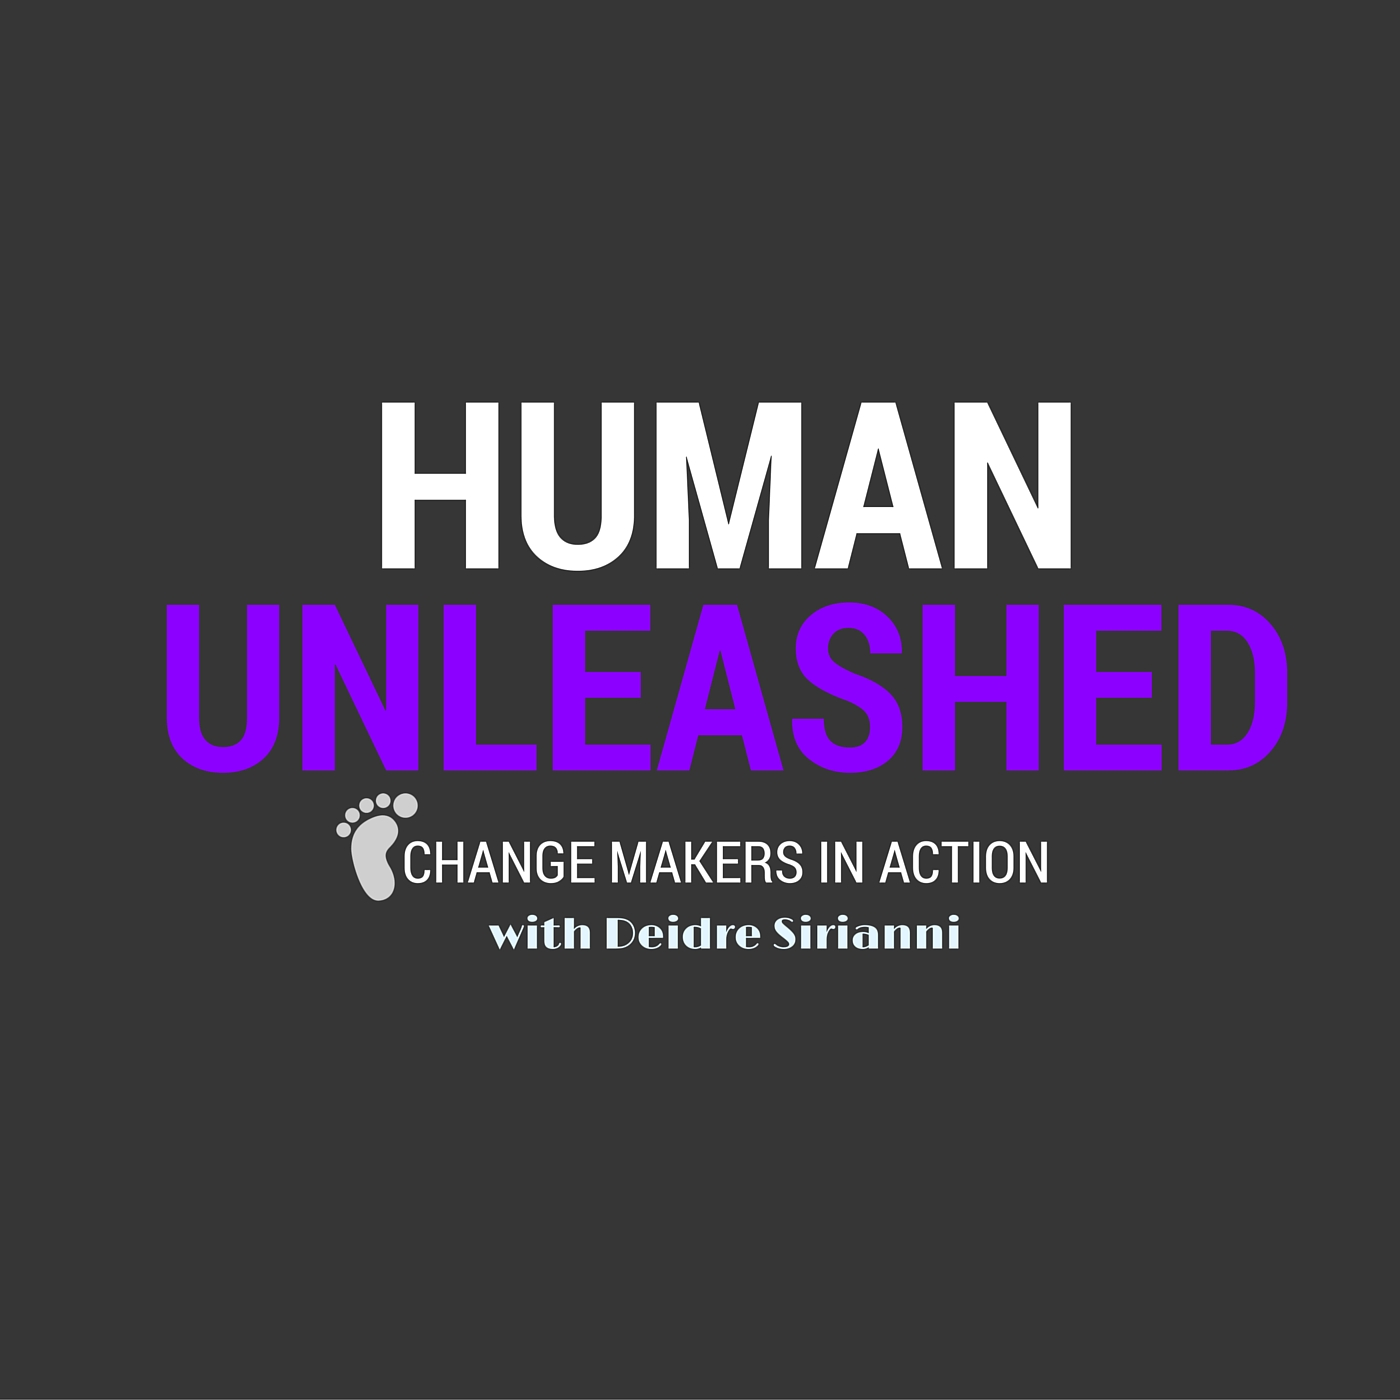 Human Unleashed